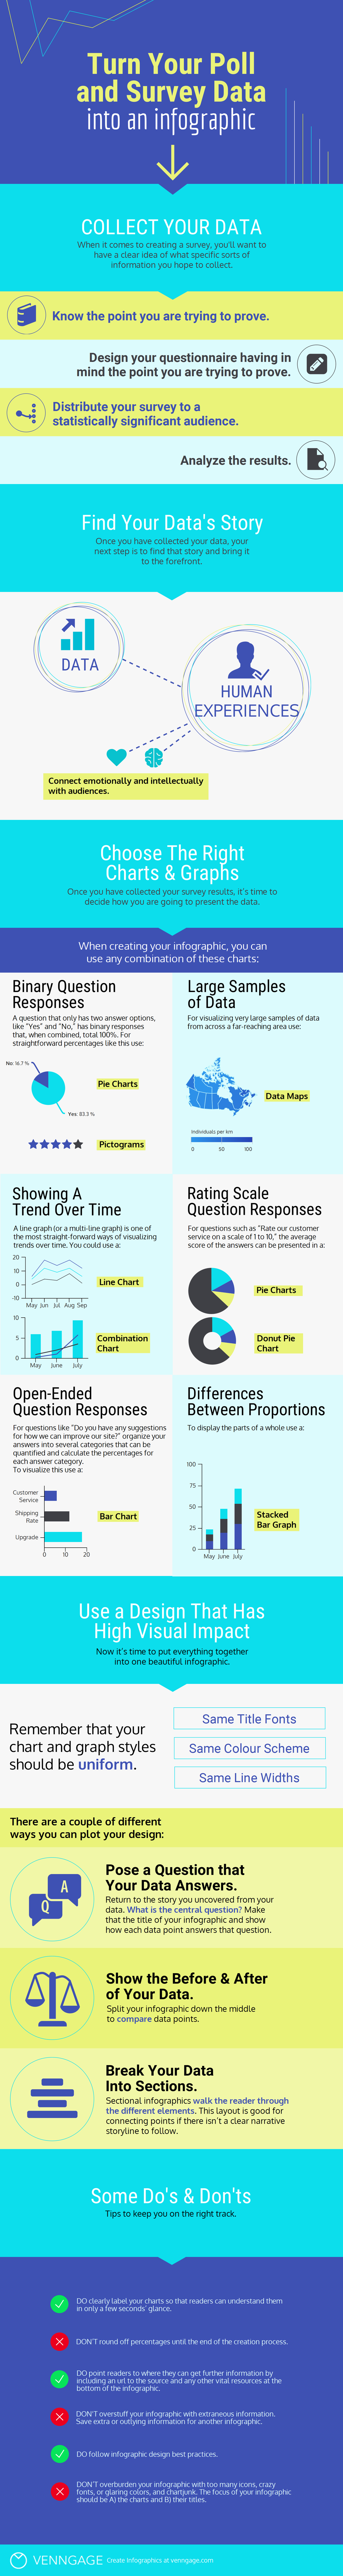 date surveys how to make an infographic from your data in 4 steps 4697